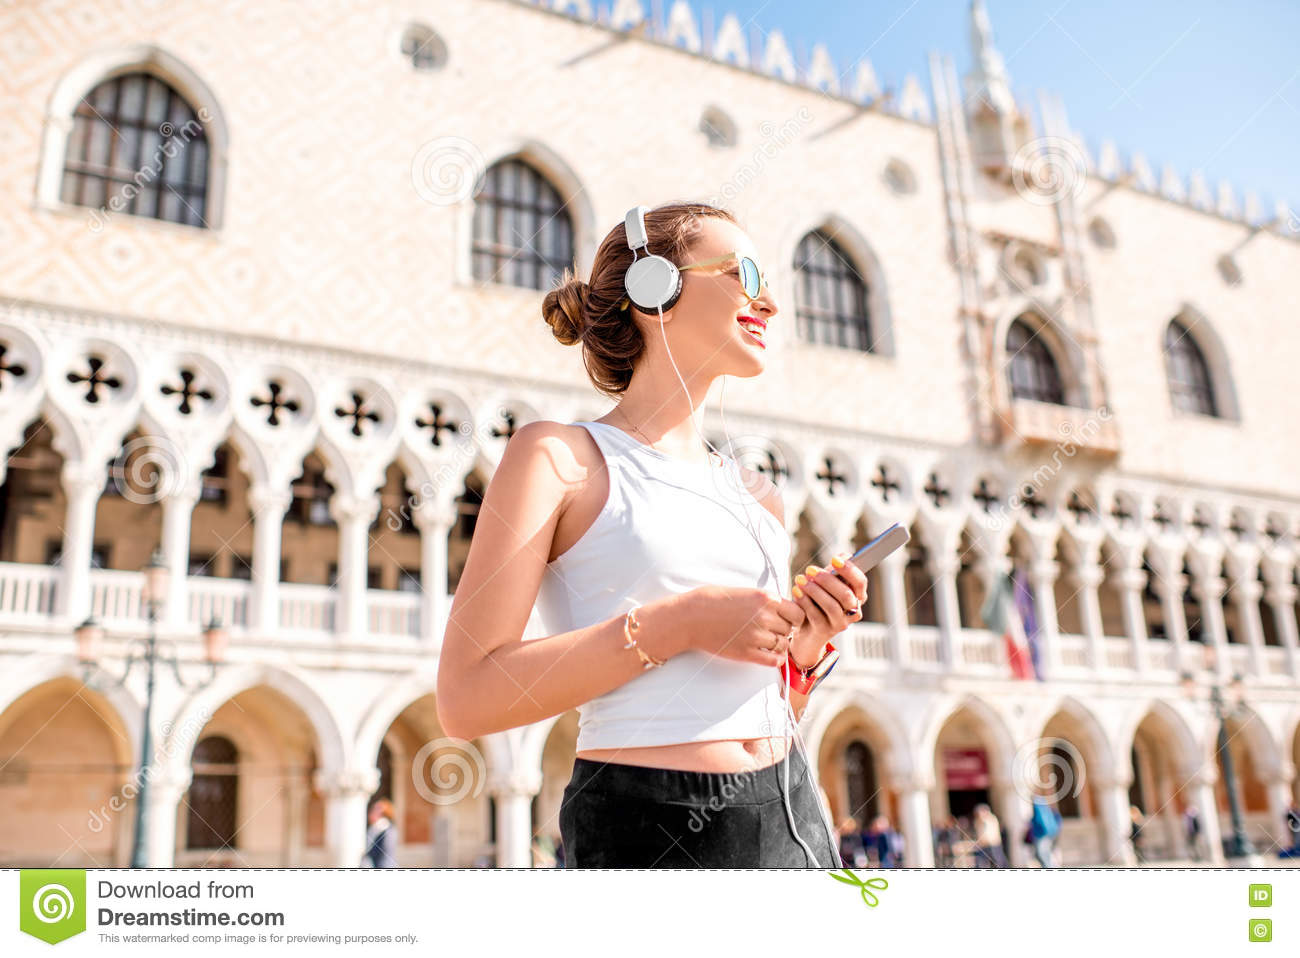 Morning exercise in the old town of Venice